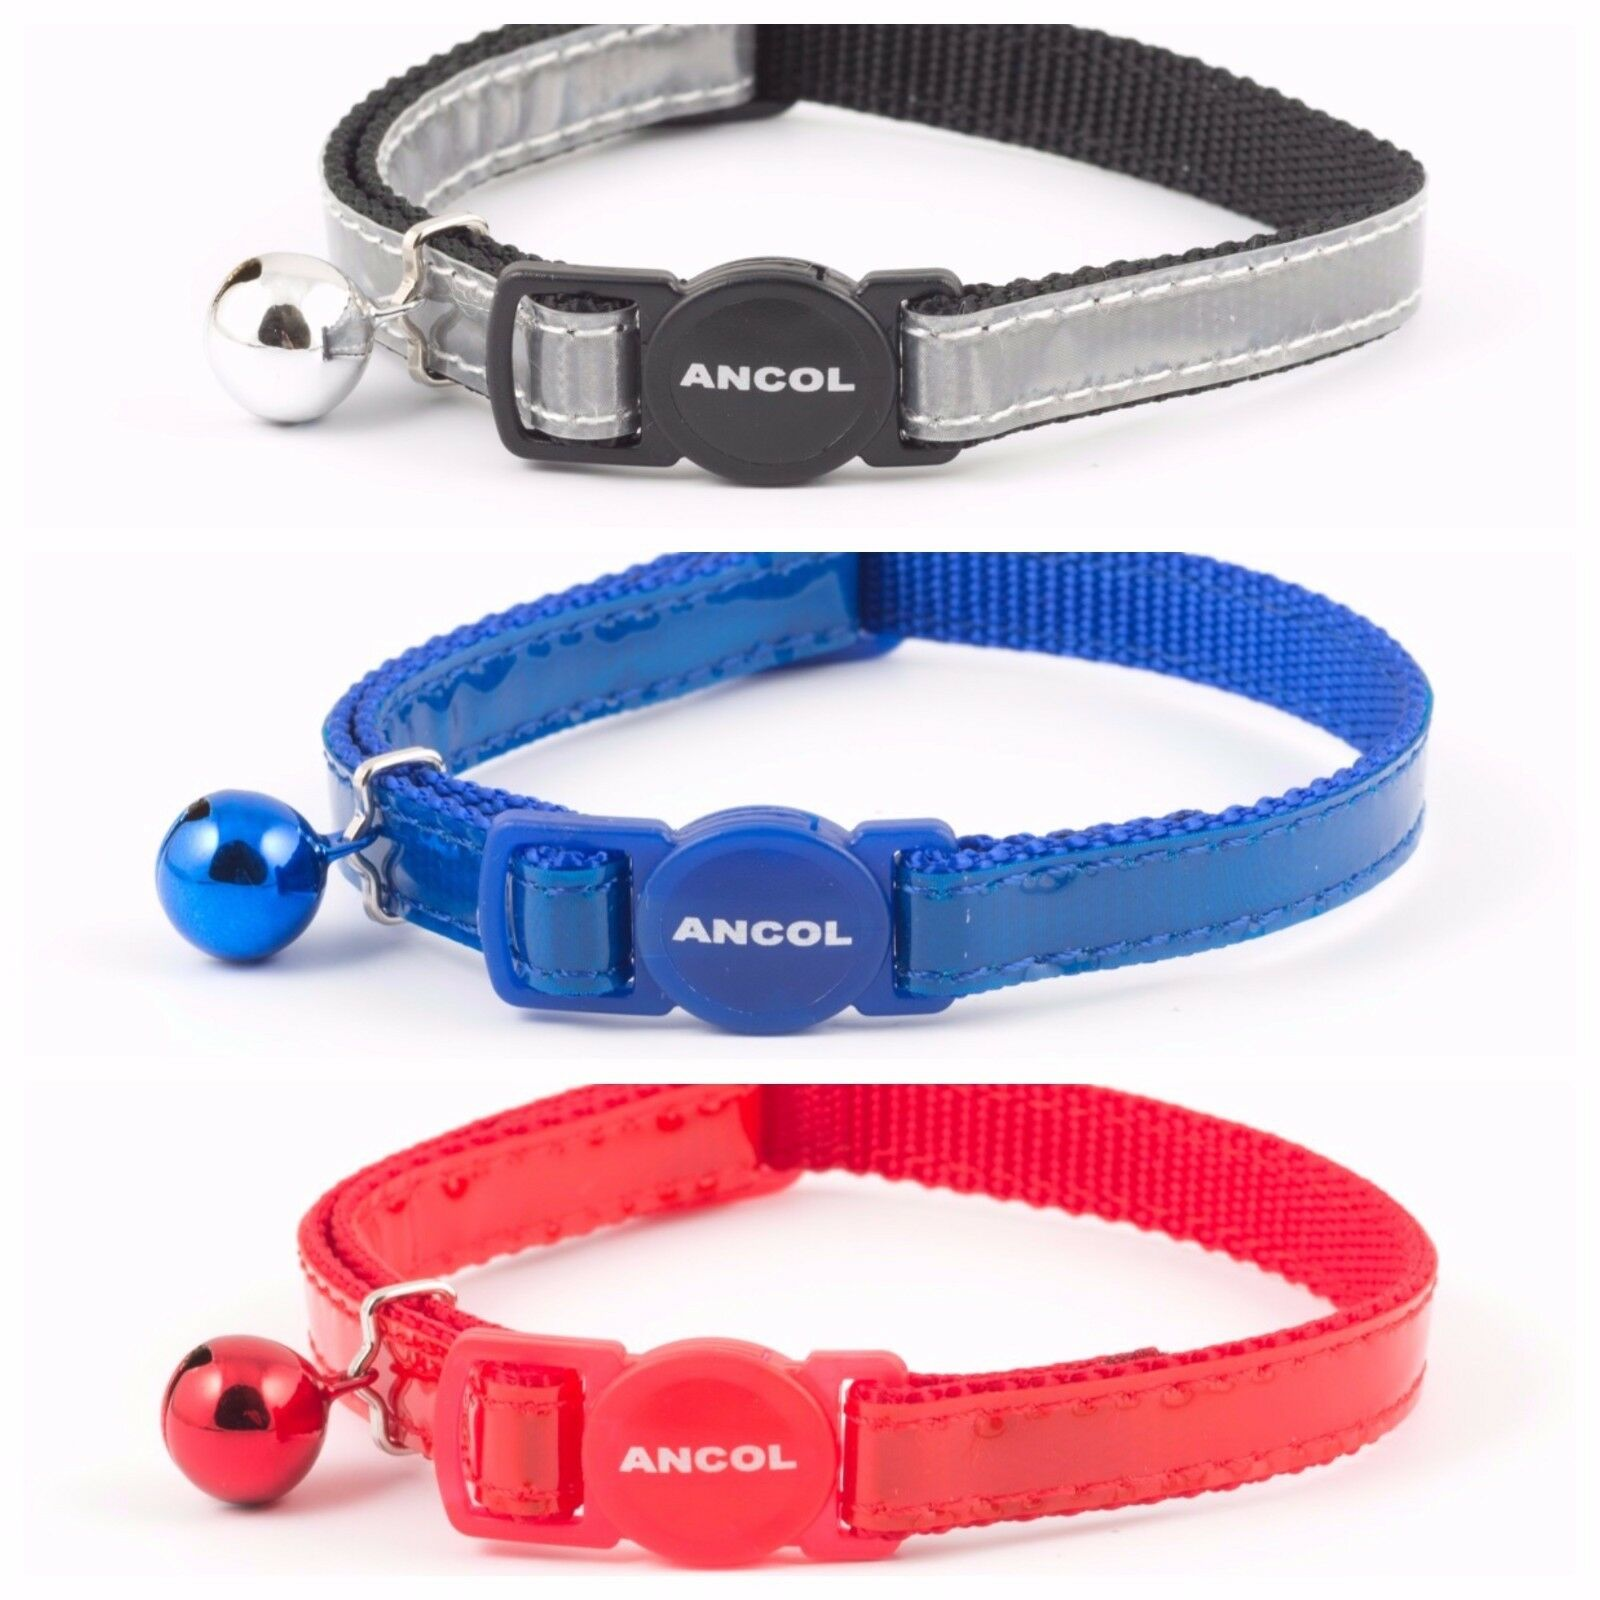 ANCOL GLOSS REFLECTIVE CAT COLLAR with or without ENGRAVED ID TAG